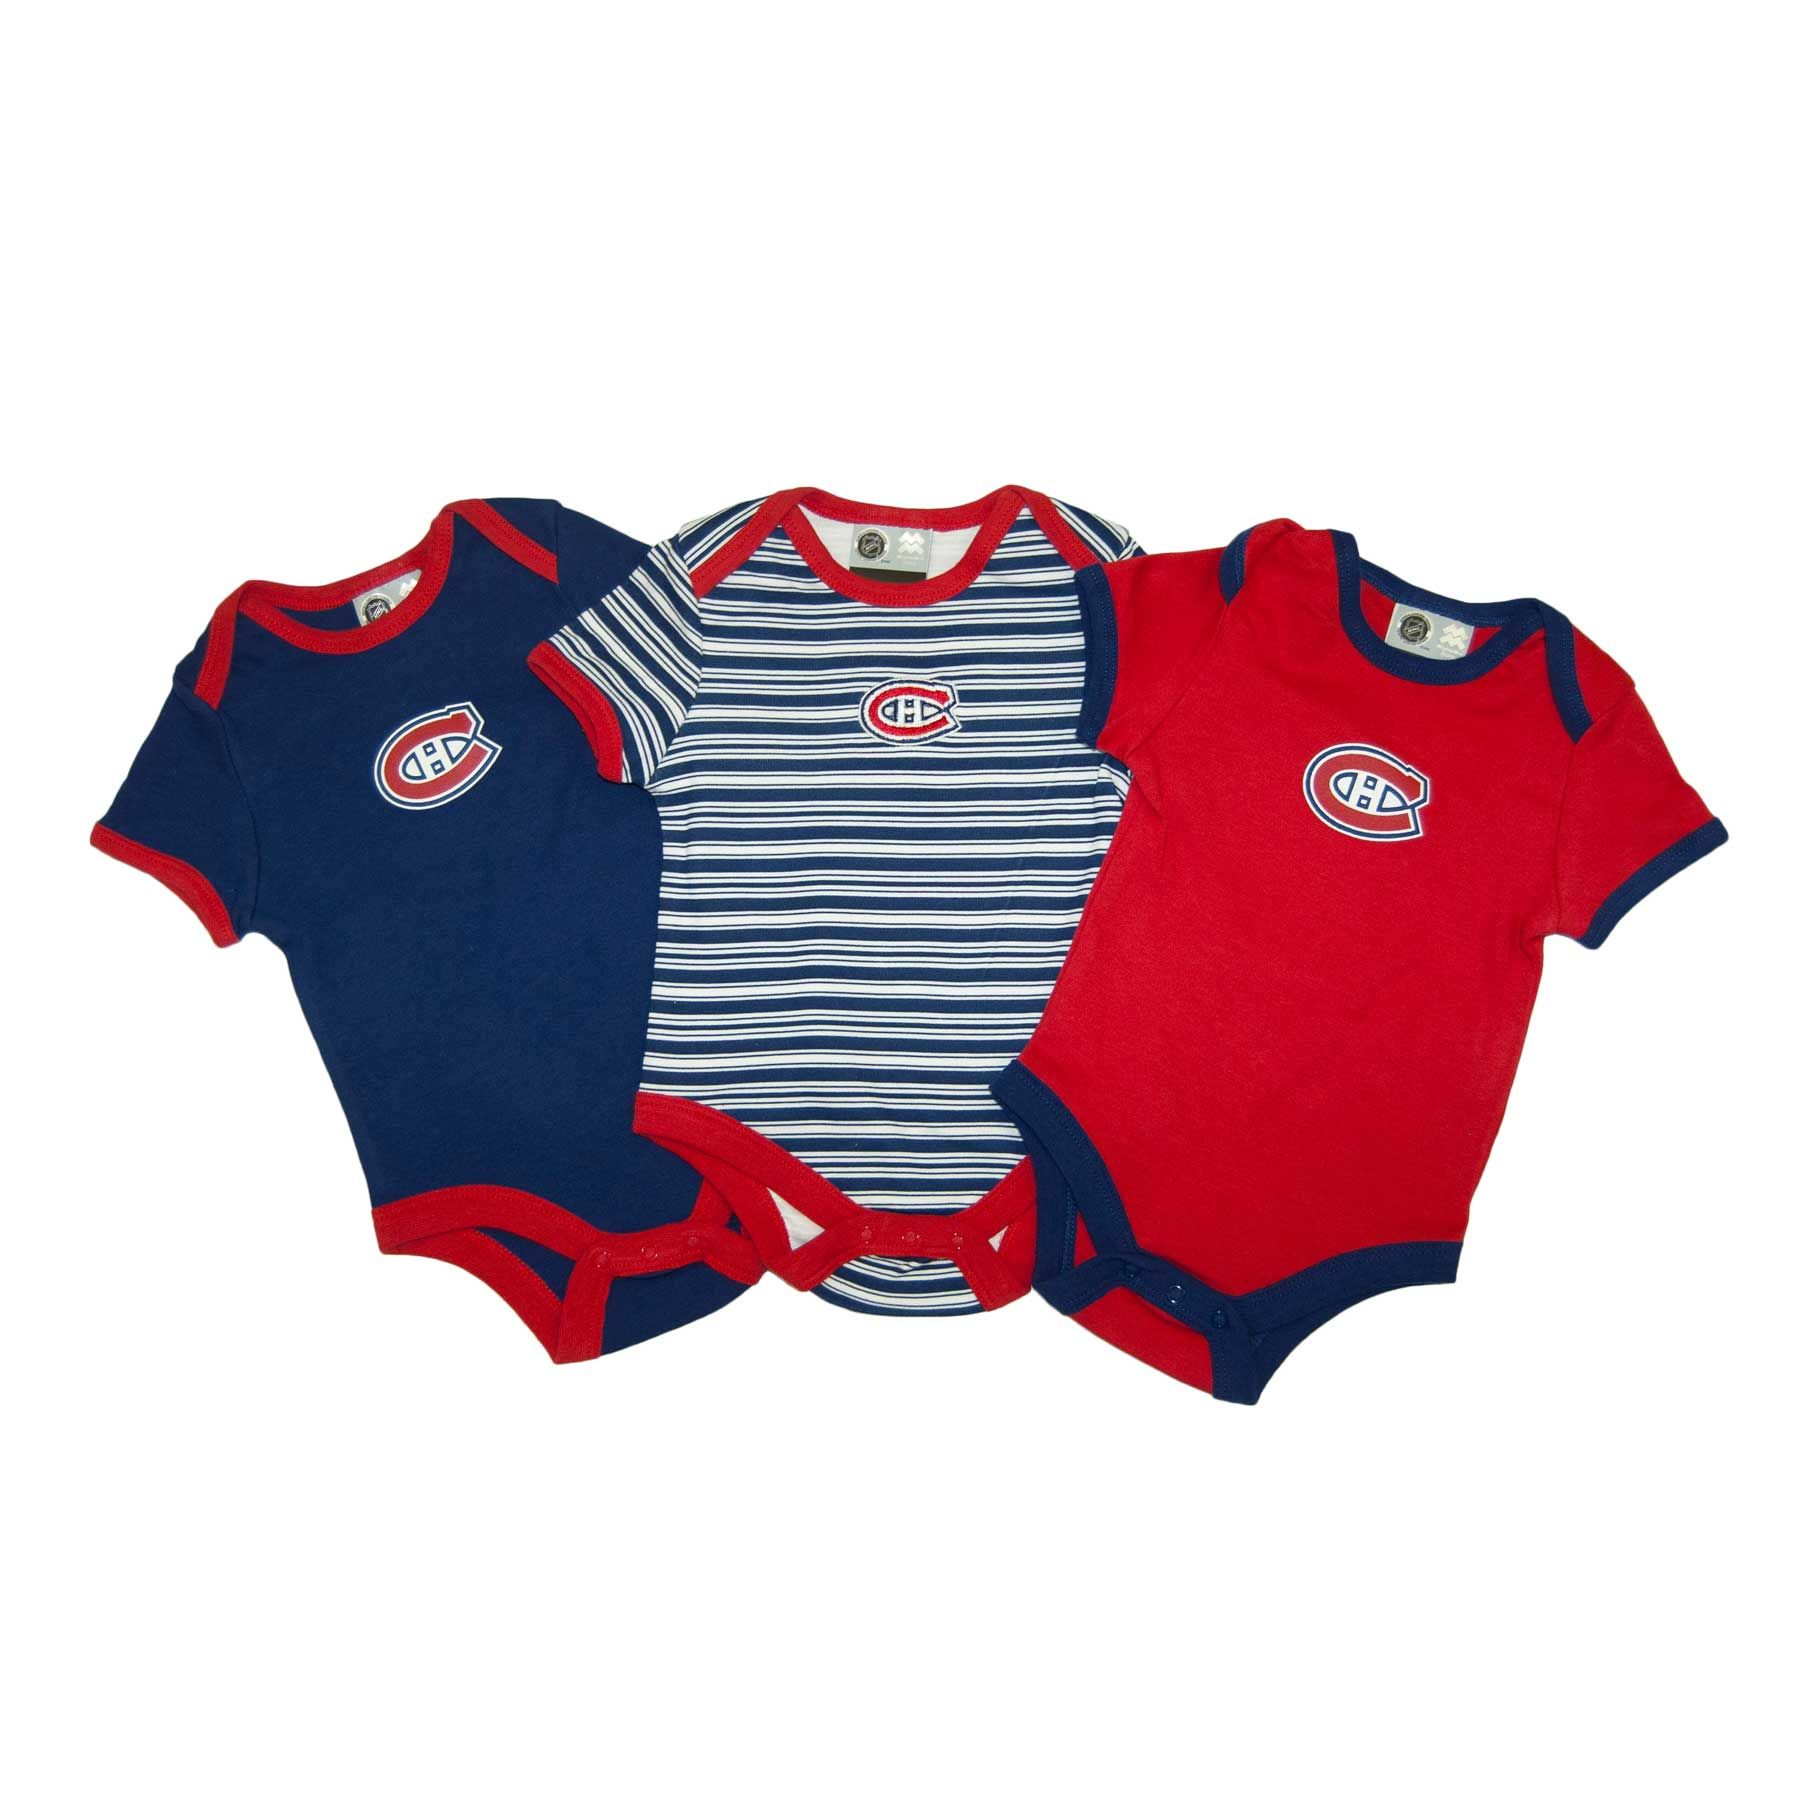 Montreal Cana ns Baby 3 pc Solid and Stripes Creeper Set